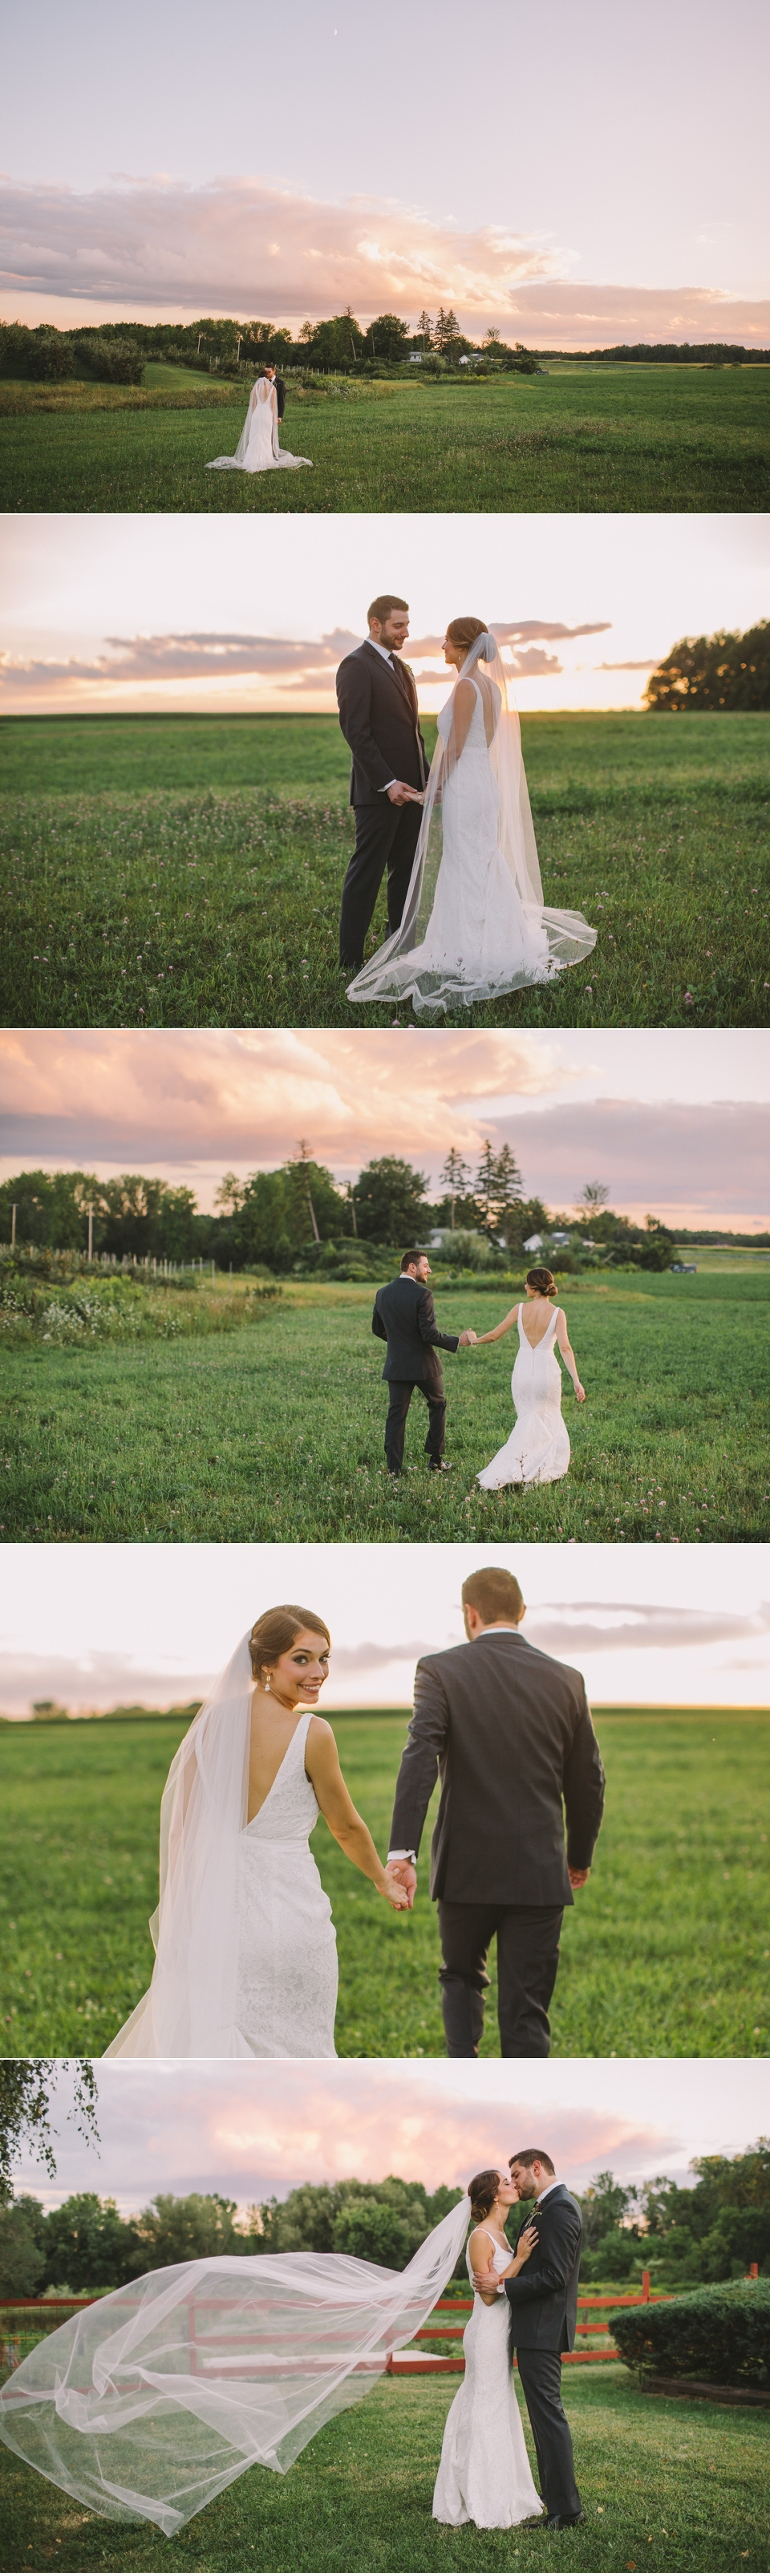 becker-farms-wedding-AJ-2015_0025